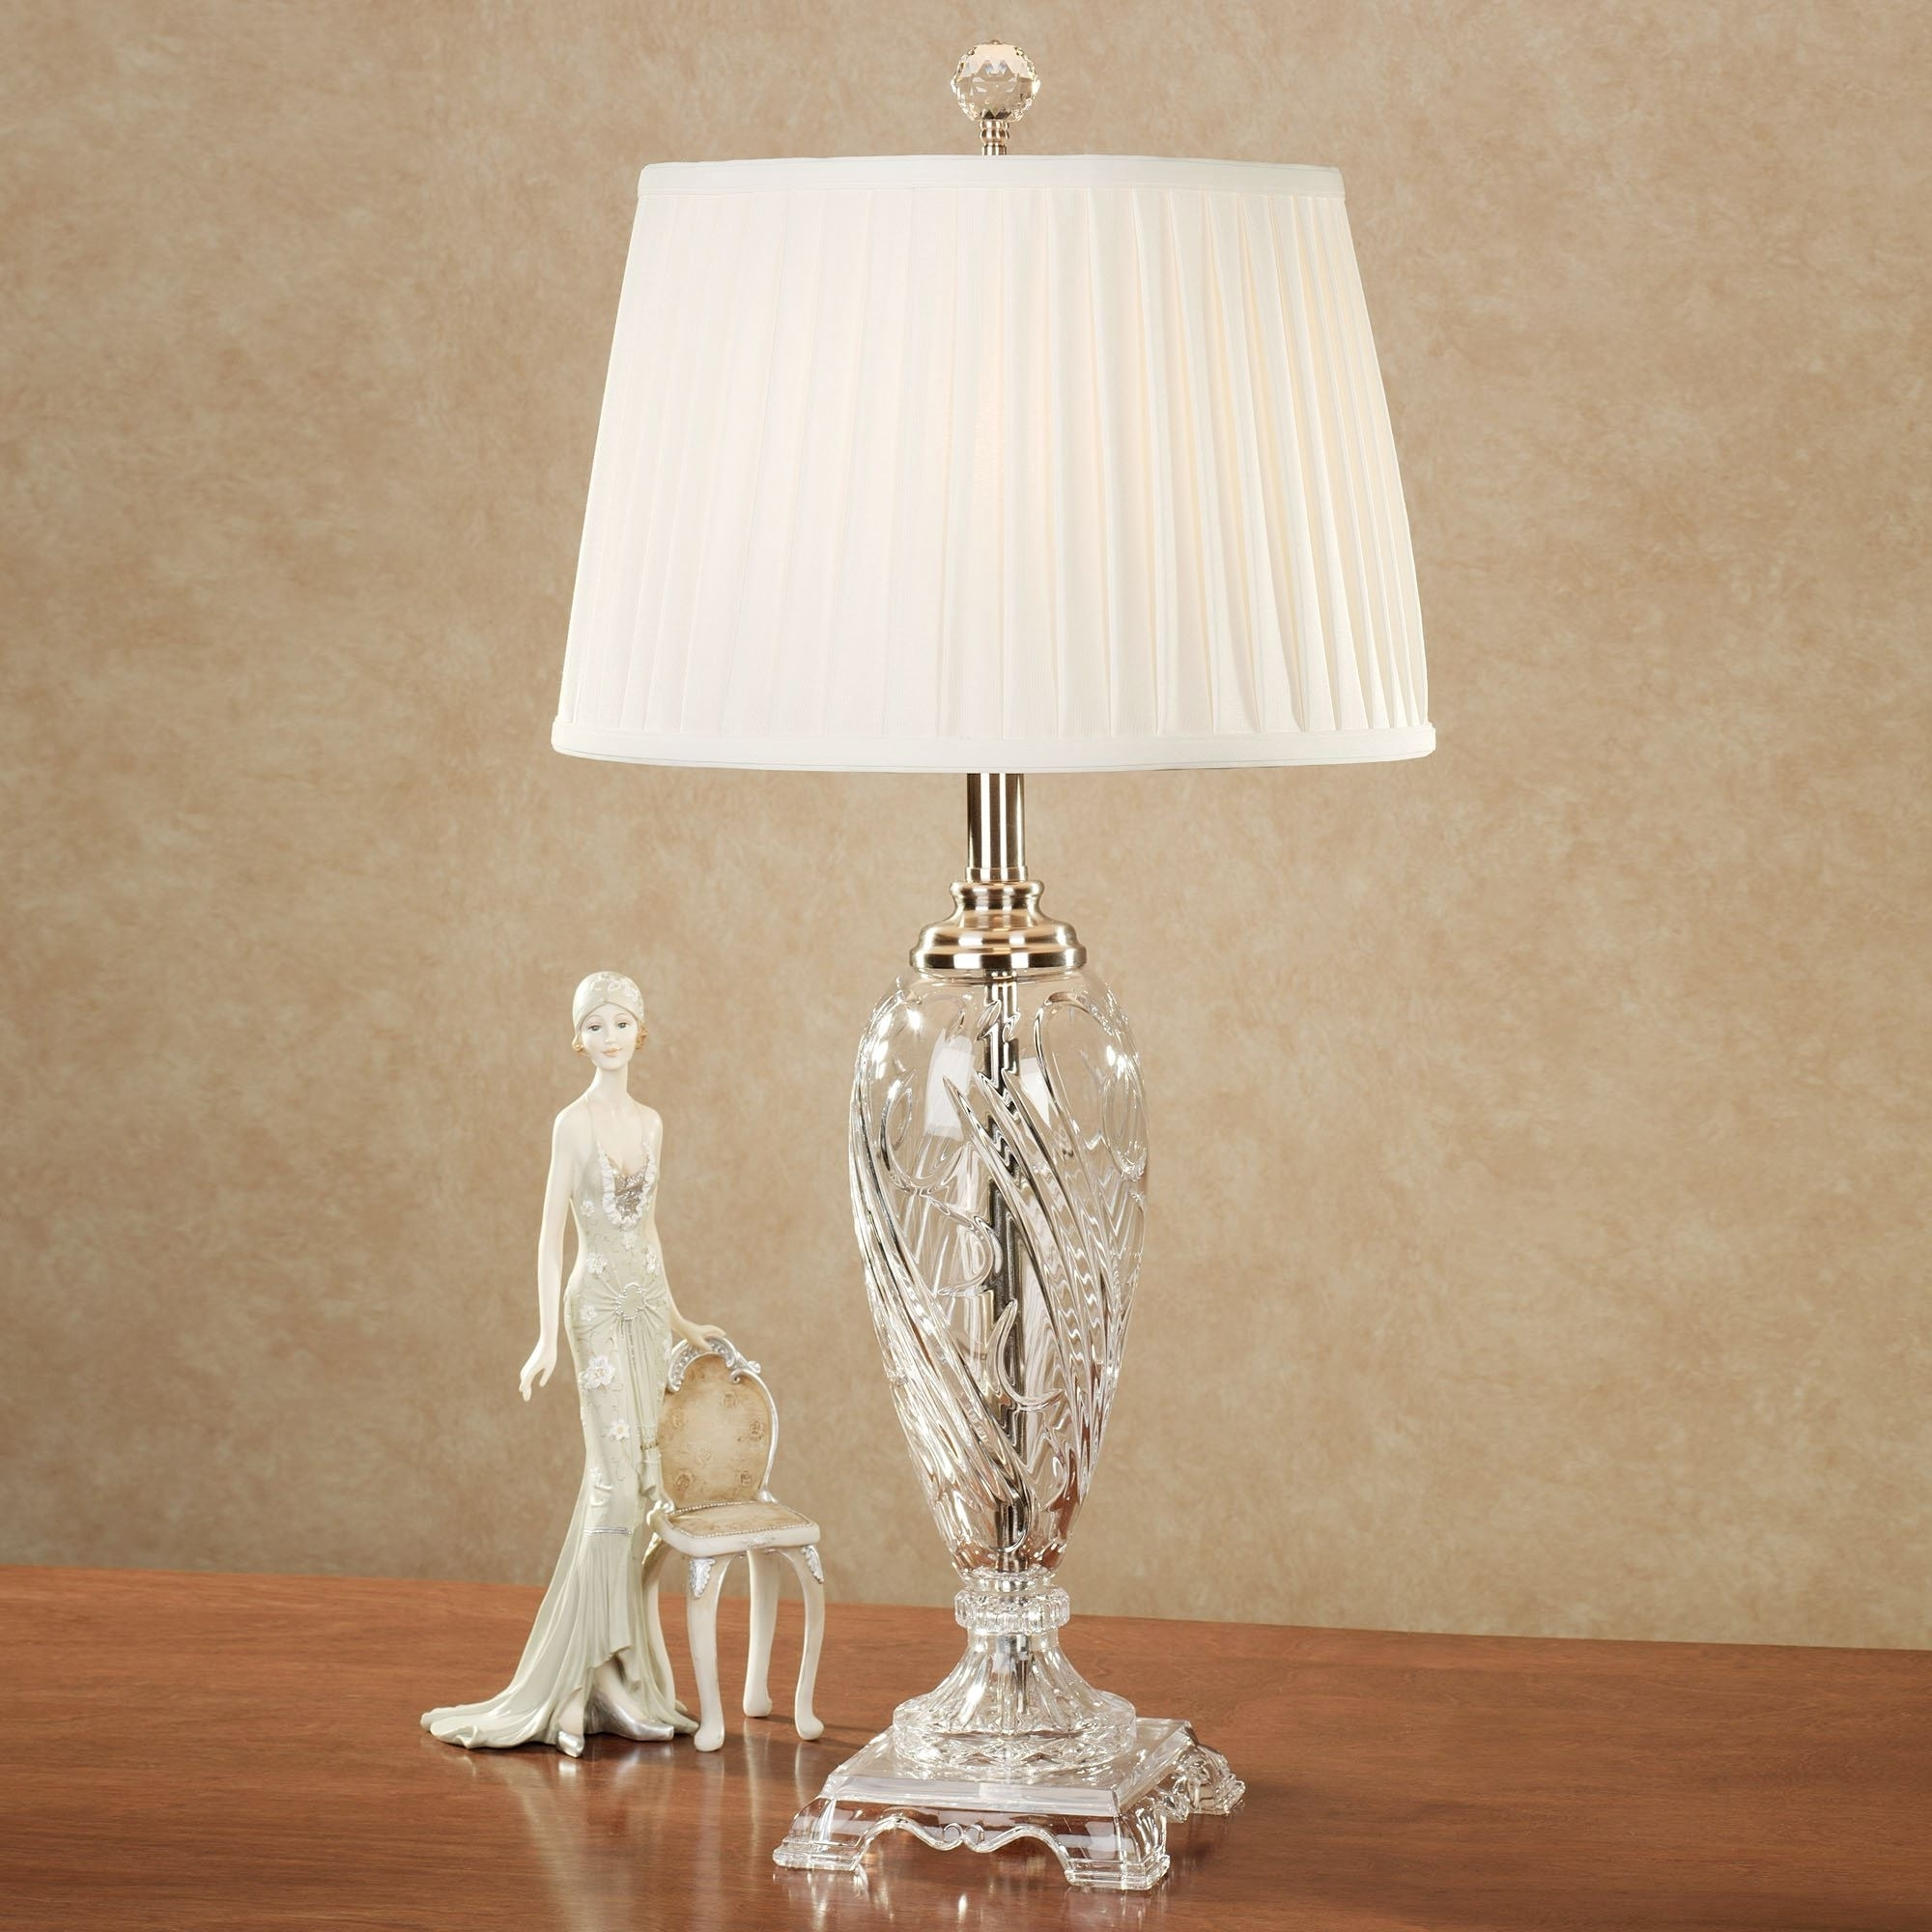 Trendy Morgana Crystal Table Lampdale Tiffany Crystal For Chandelier Night Stand Lamps (View 20 of 20)